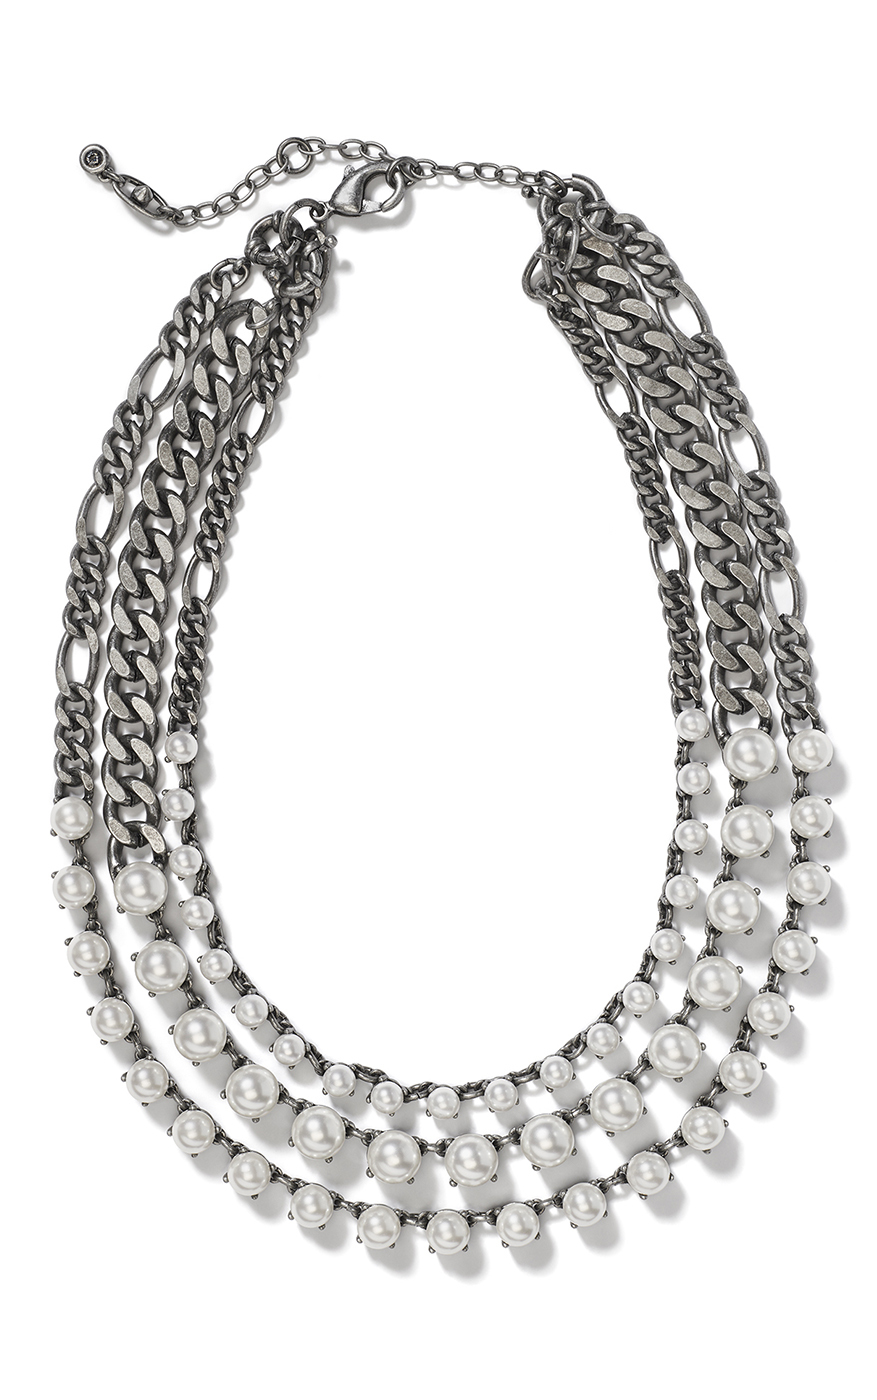 Clutch Necklace in Antique Silver Front